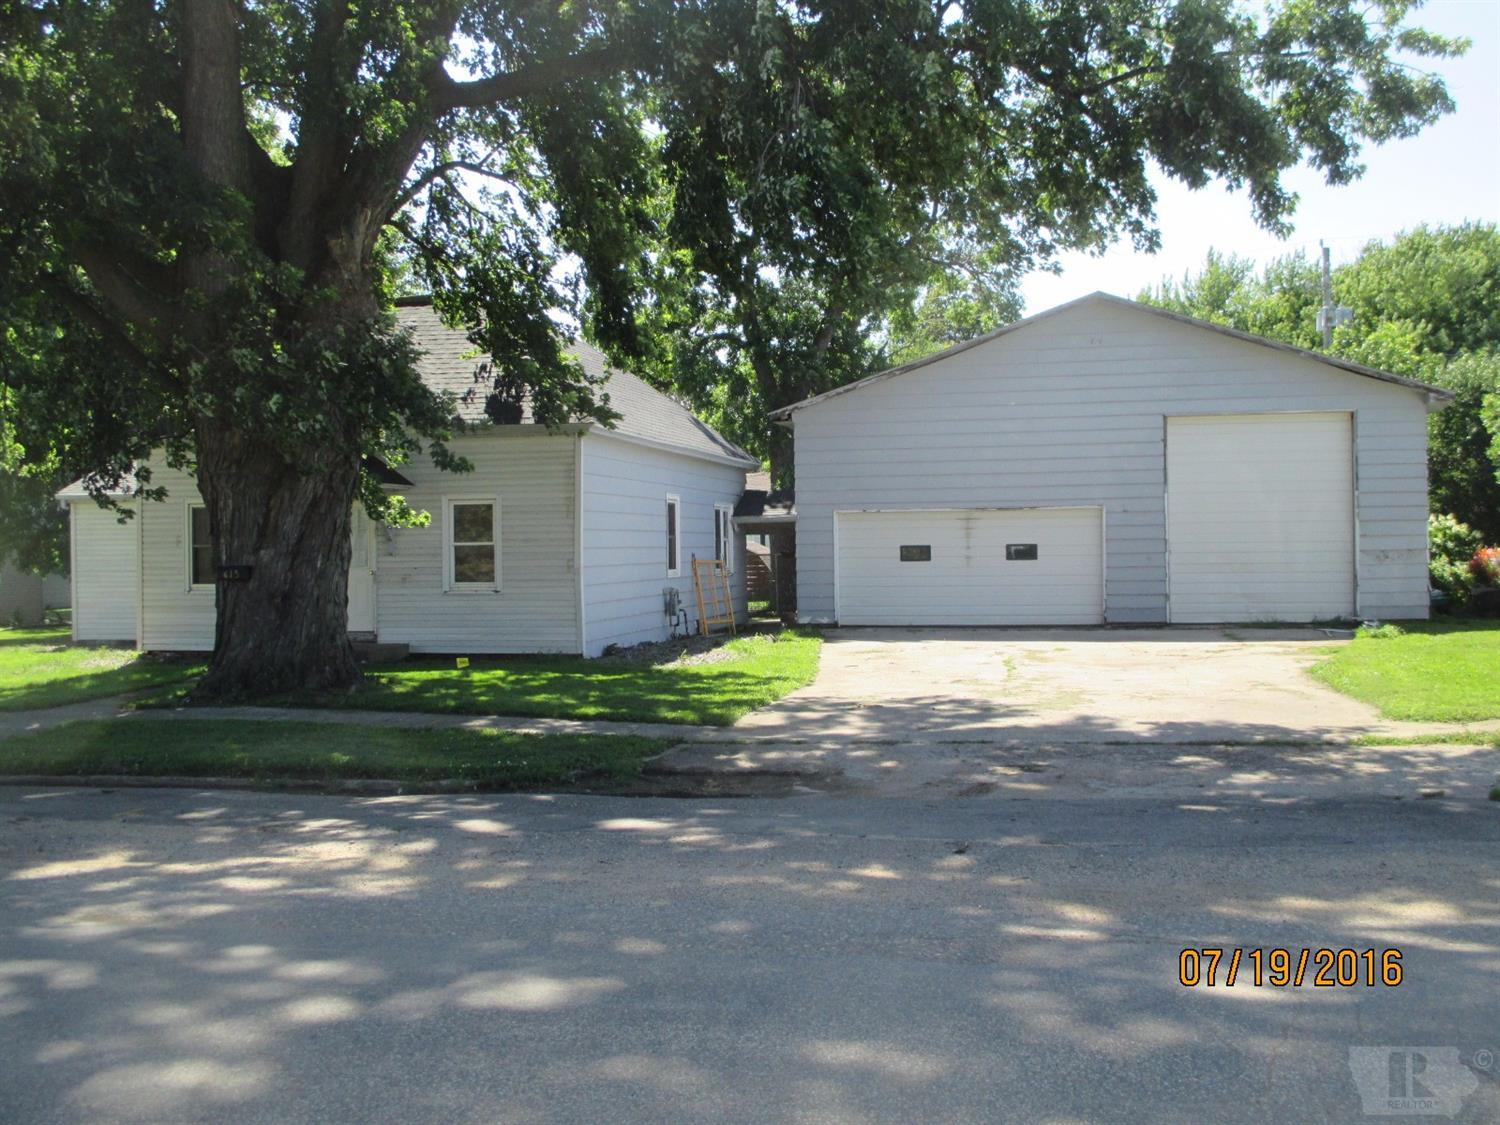 primary photo for 615 Main Street, Boyden, IA 51234, US